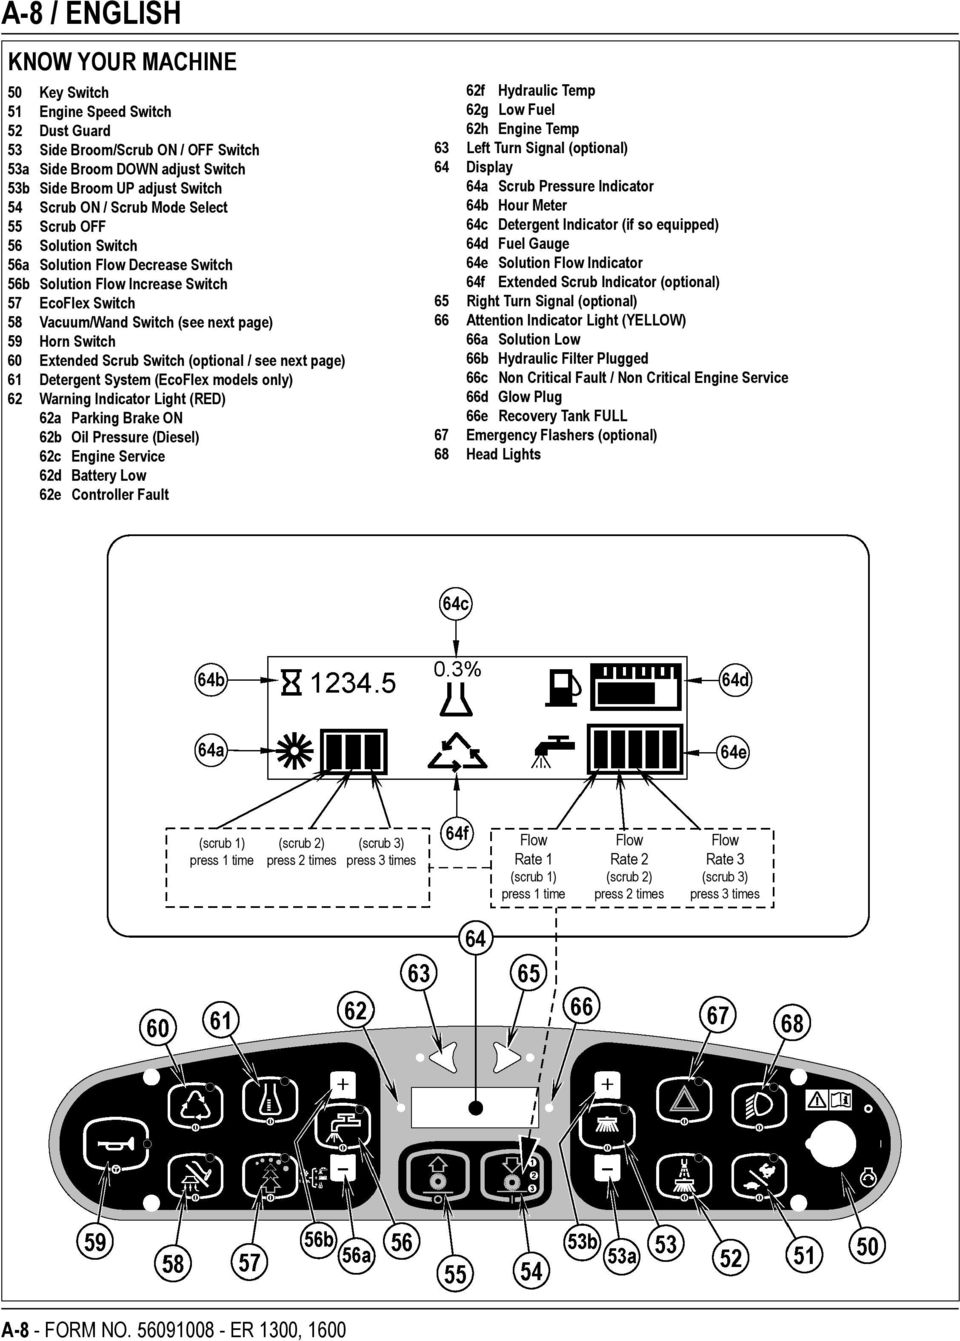 Extended Scrub Switch (optional / see next page) 61 Detergent System (EcoFlex models only) 62 Warning Indicator Light (RED) 62a Parking Brake ON 62b Oil Pressure (Diesel) 62c Engine Service 62d